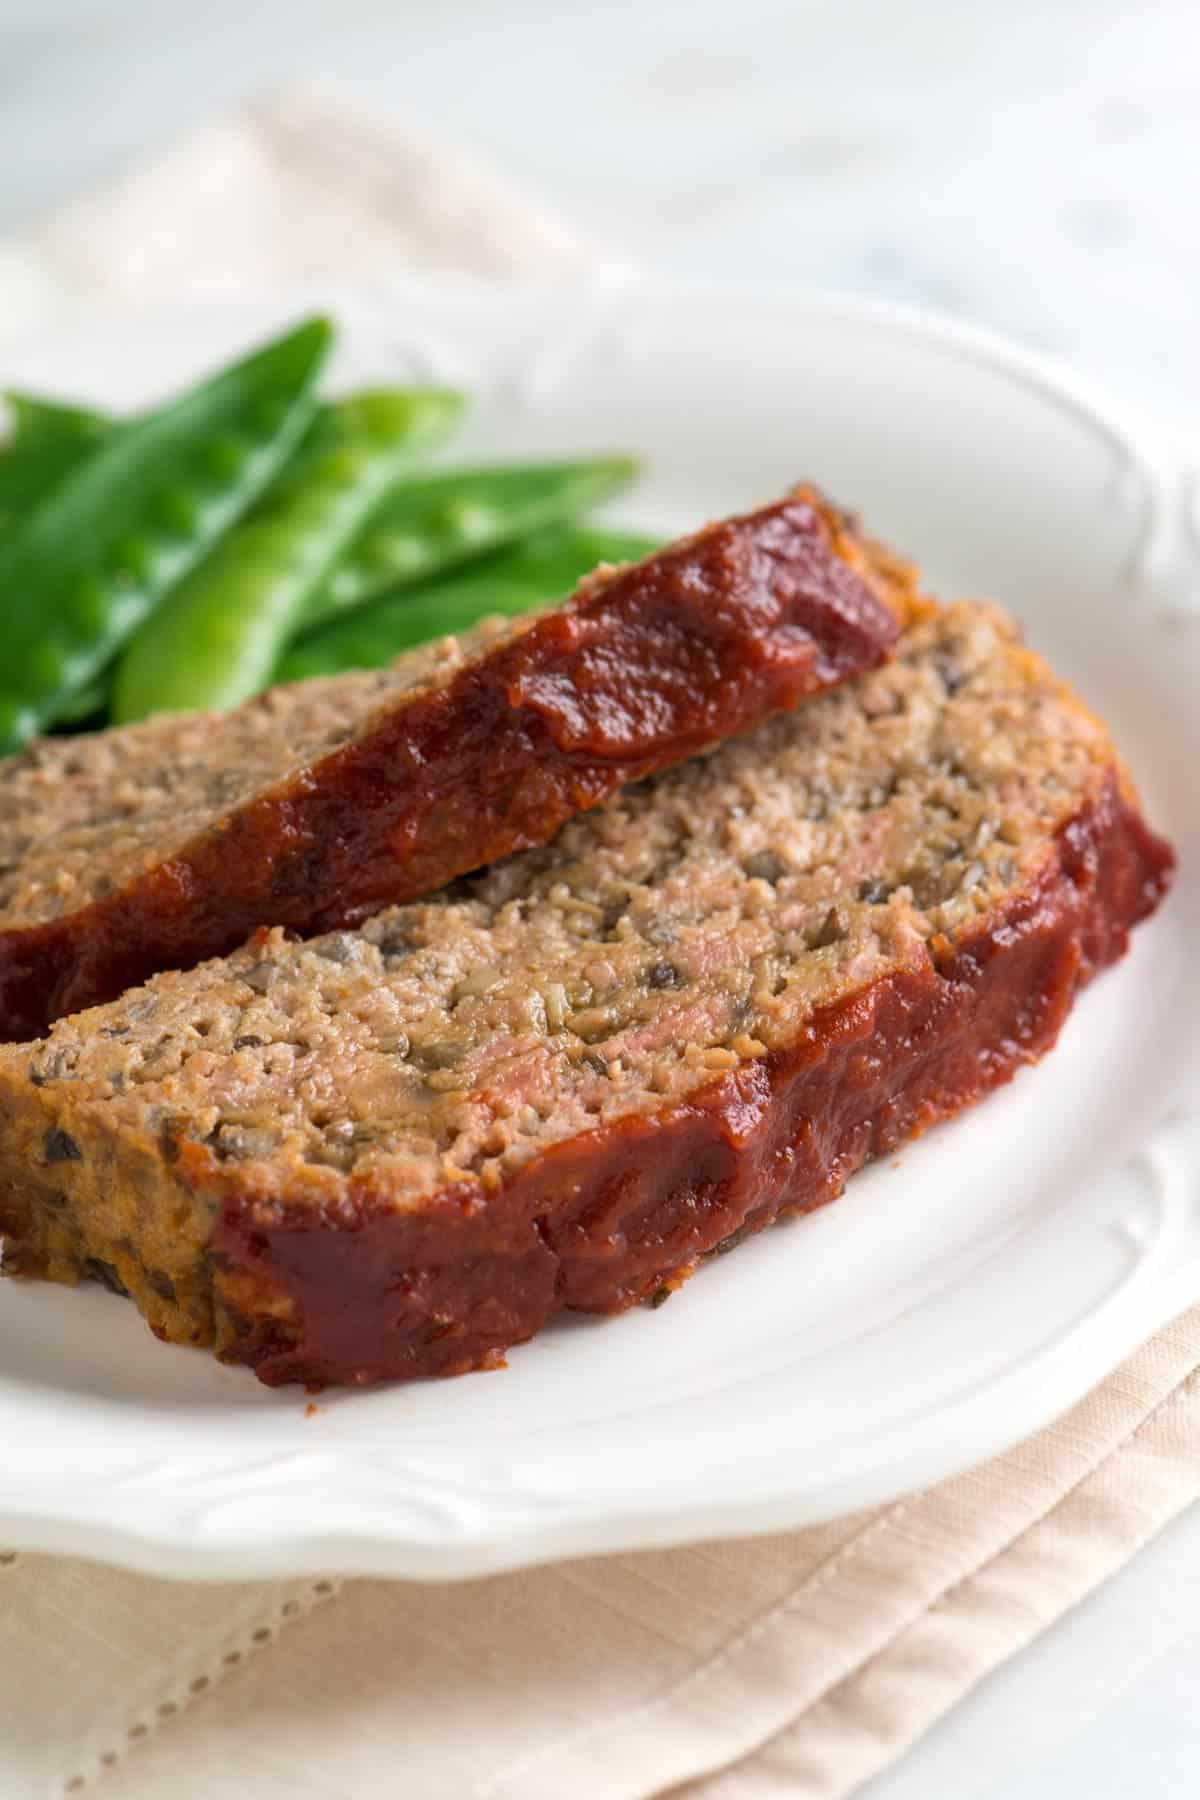 We set out to create the best turkey meatloaf recipe, and here it is! This turkey meatloaf is full of flavor, moist in the middle, and has become a reader favorite!